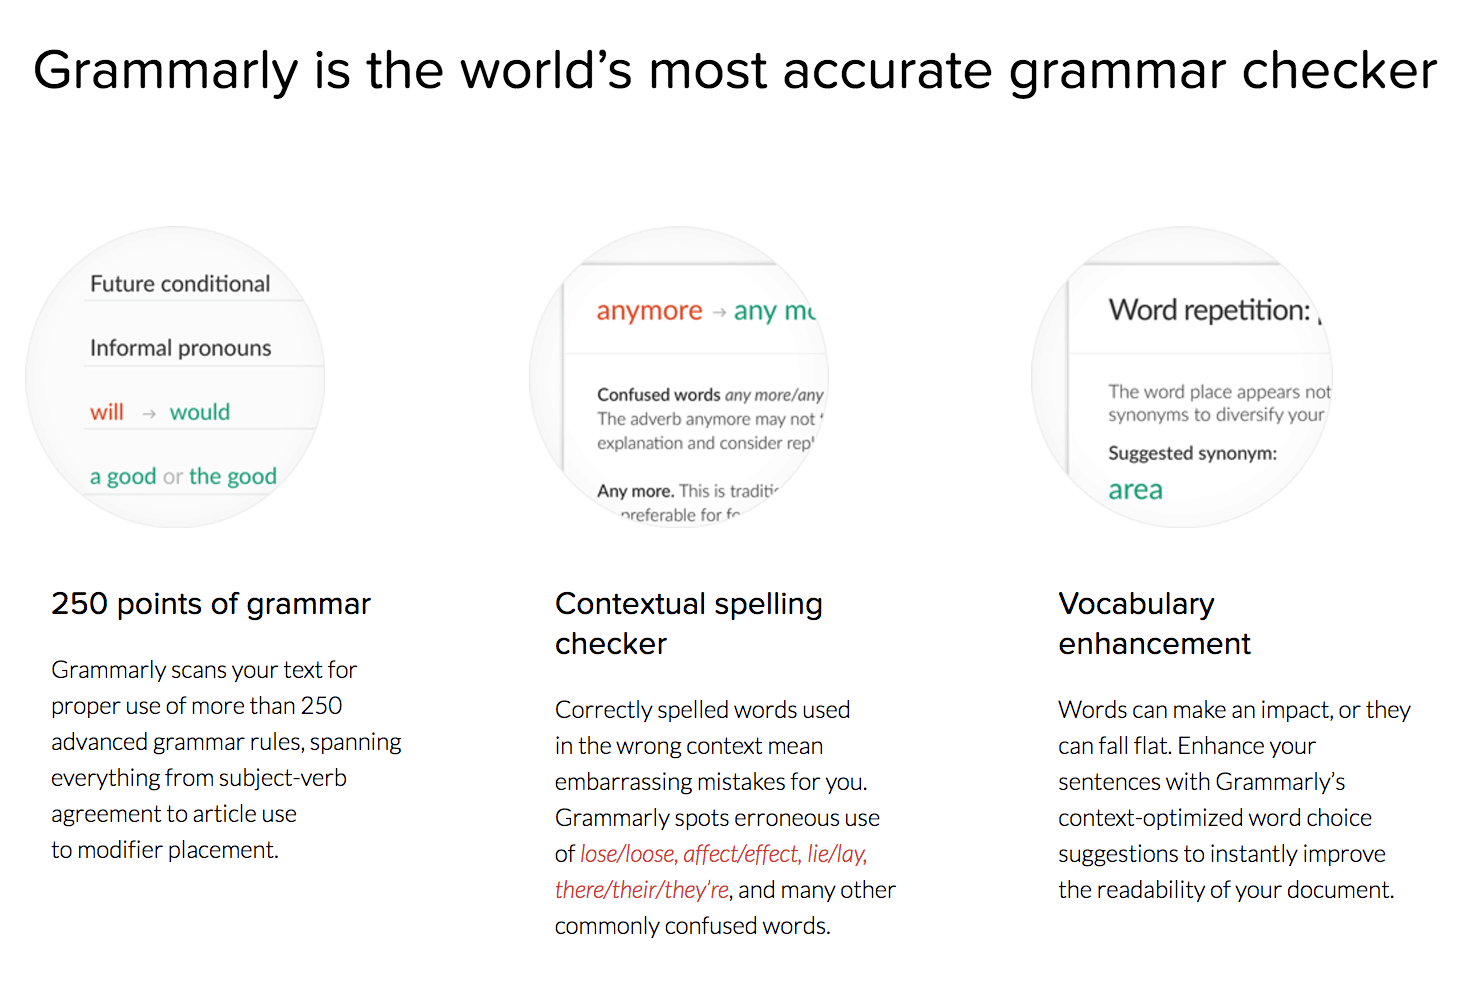 Grammarly Is Saving The Internet From Typos And Poor Grammar - Writing Tips - Blogging Tips - Passive Income - Affiliates - Content - Social Media - Management - SEO - Promote   www.herpaperroute.com